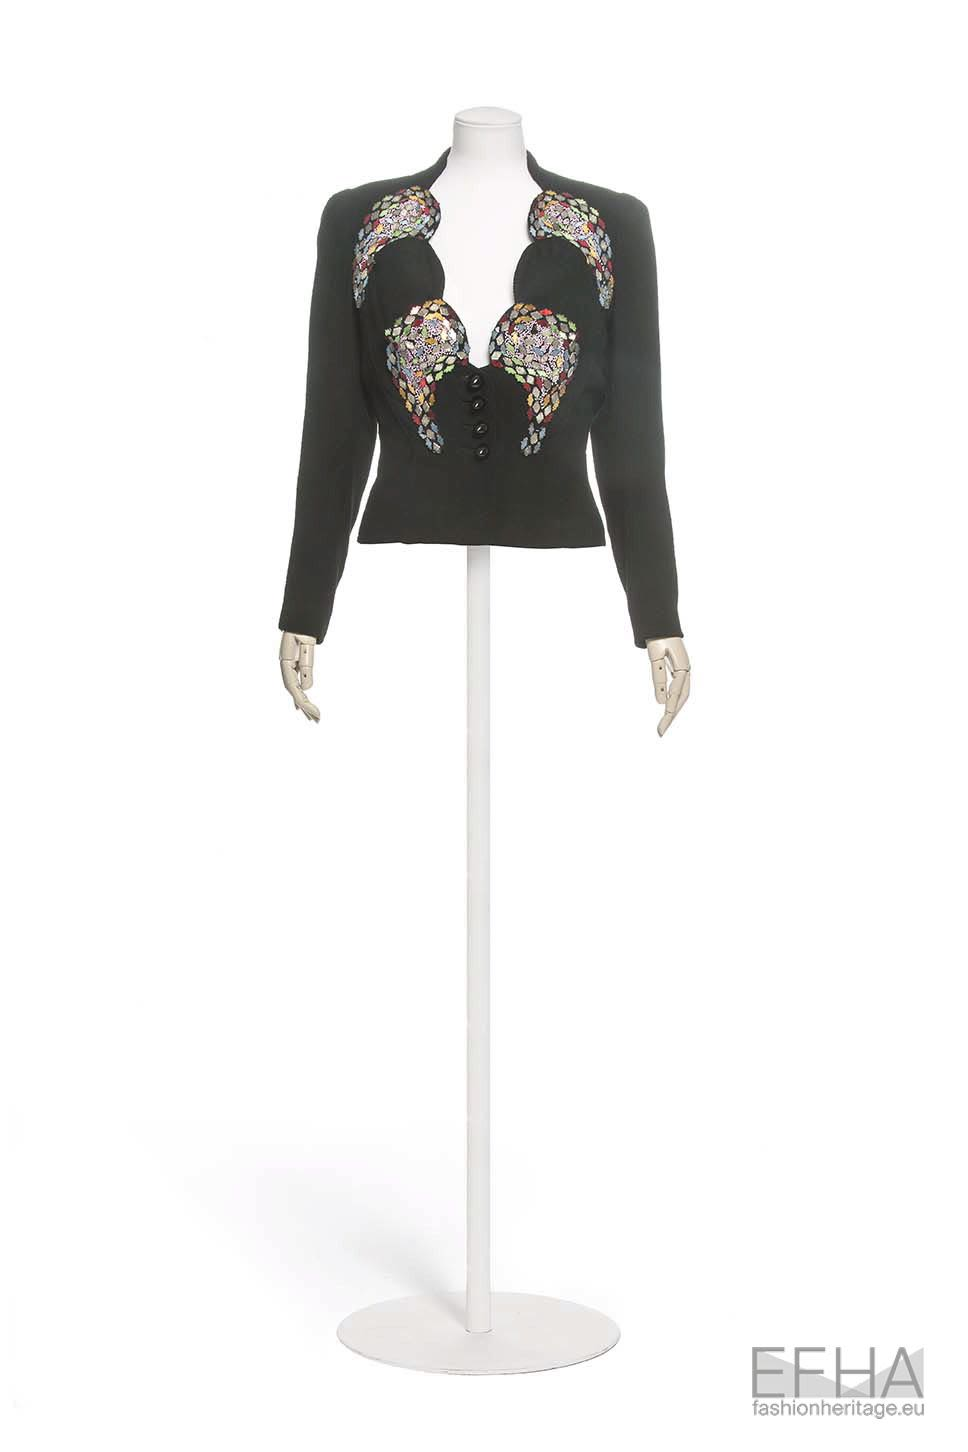 Short black jacket with multicoloured sequins, displayed on a mannequin